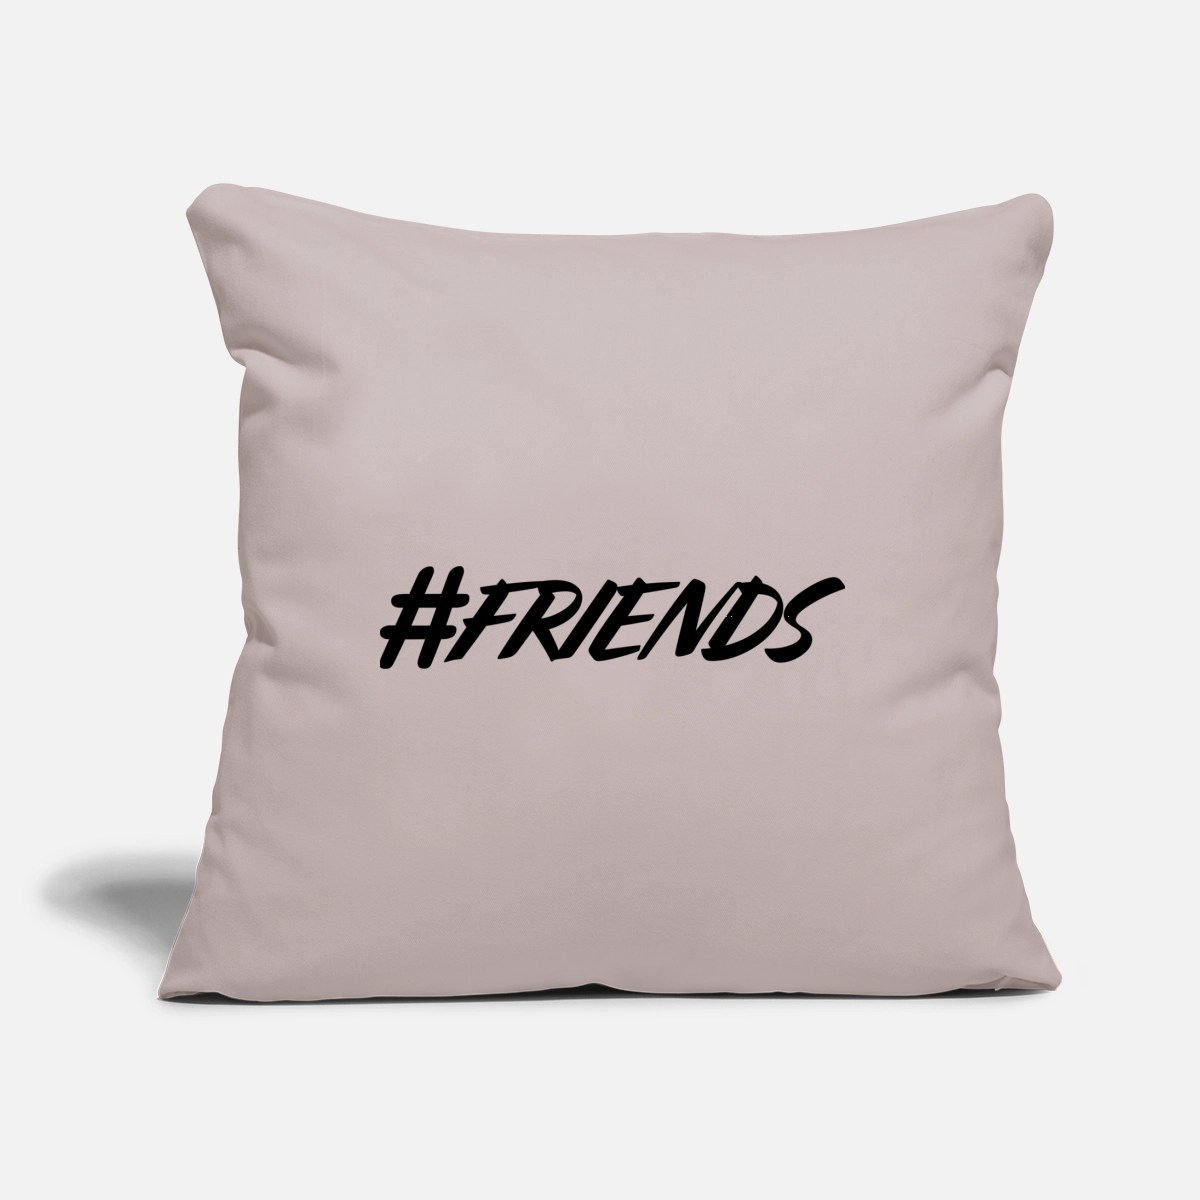 hashtag hash for story stories story friends throw pillow cover 18 x 18 light taupe